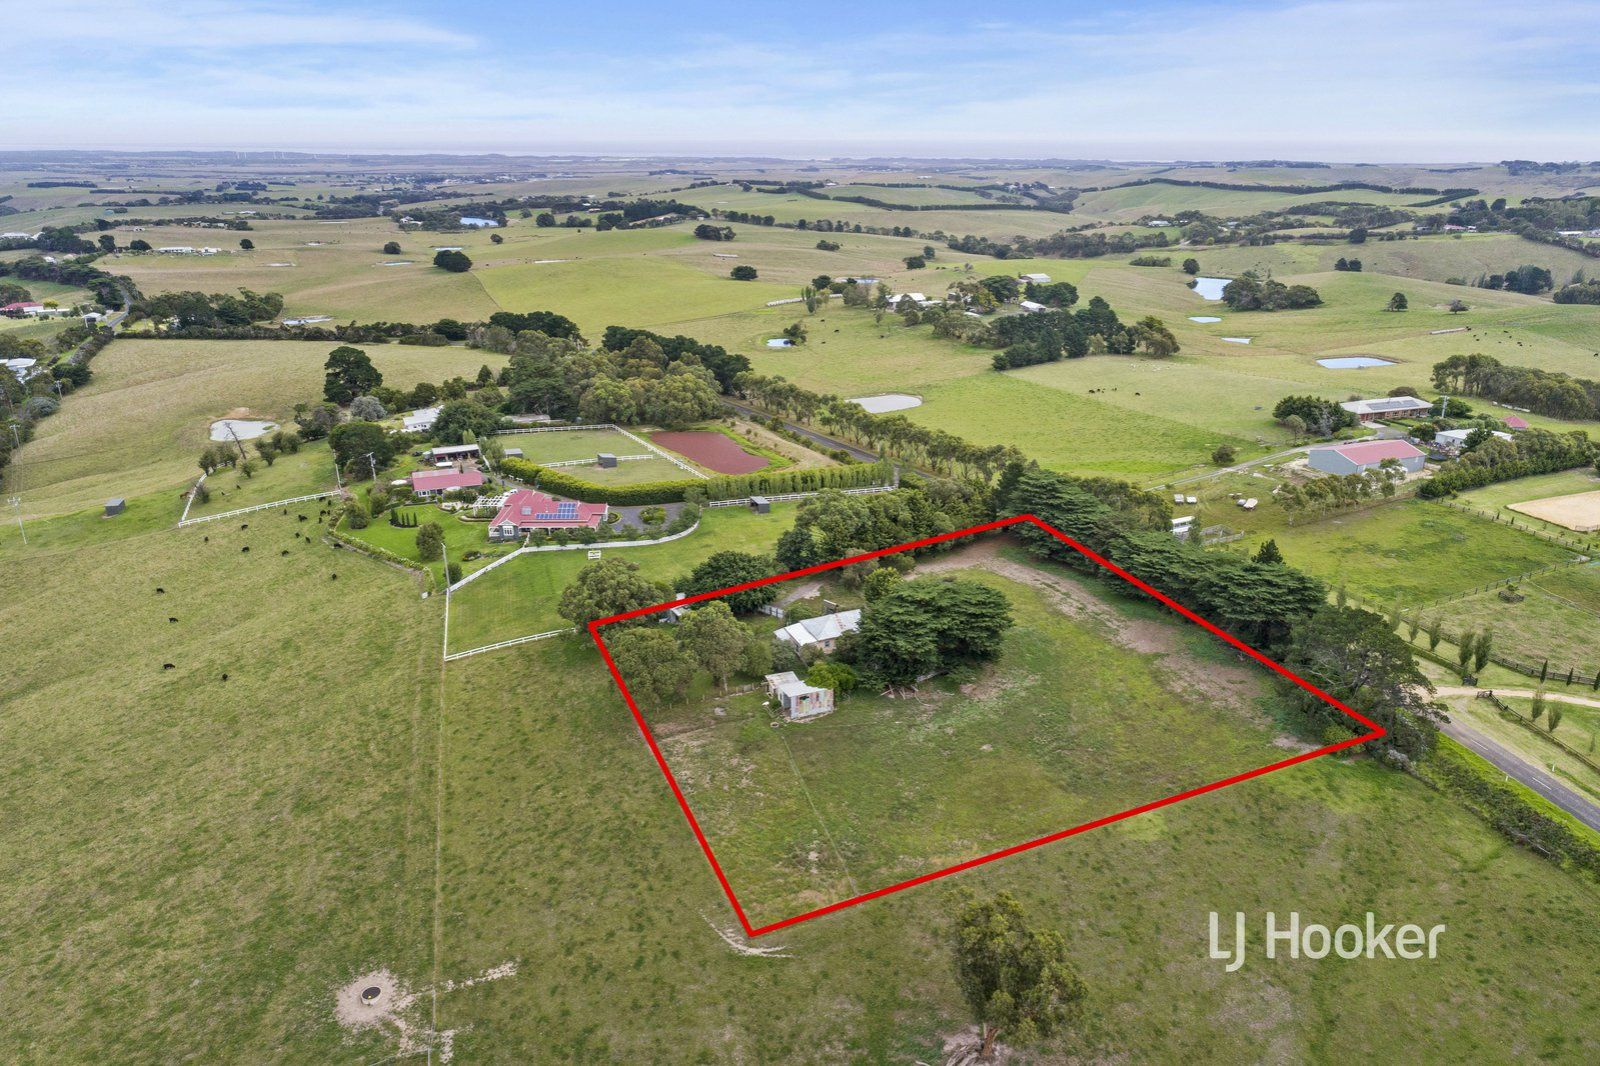 525 Dalyston - Glenforbes Road, Ryanston VIC 3992, Image 2